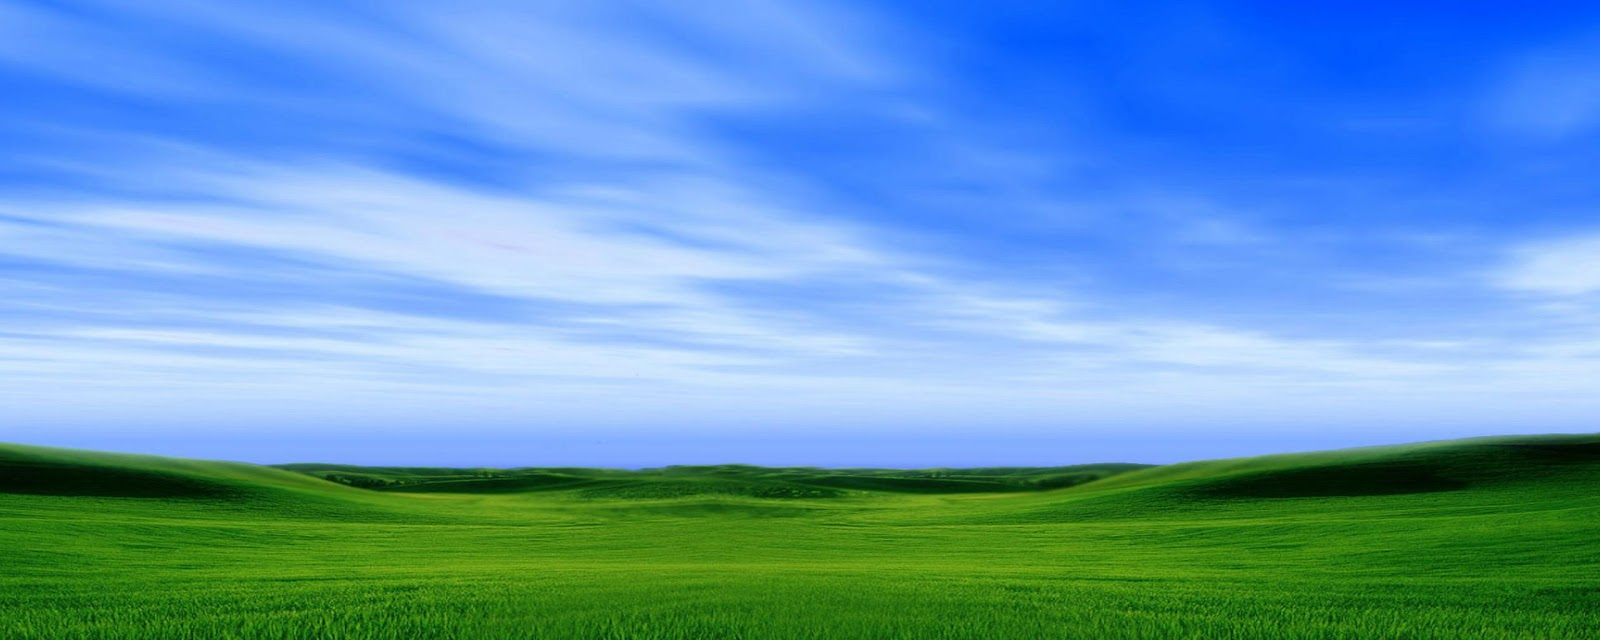 Windows Xp Fall Wallpaper Wallpaper High Quality Nature Wallpaper